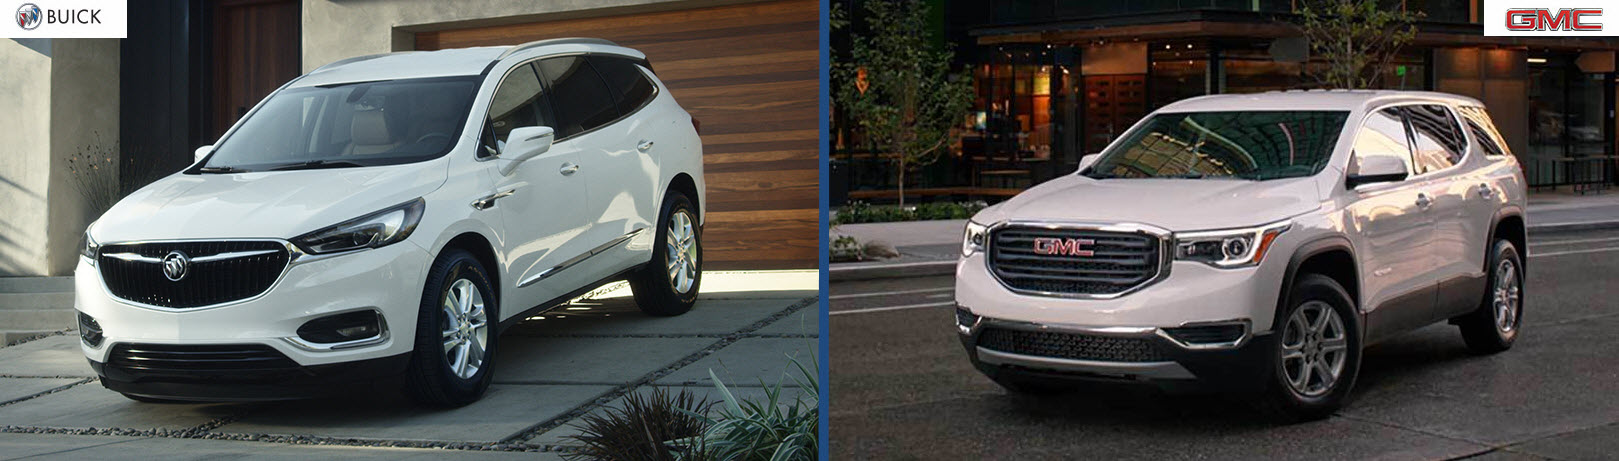 Groovy Suv Shopping Compare The 3 Row Suv Options From Buick Gmc Evergreenethics Interior Chair Design Evergreenethicsorg